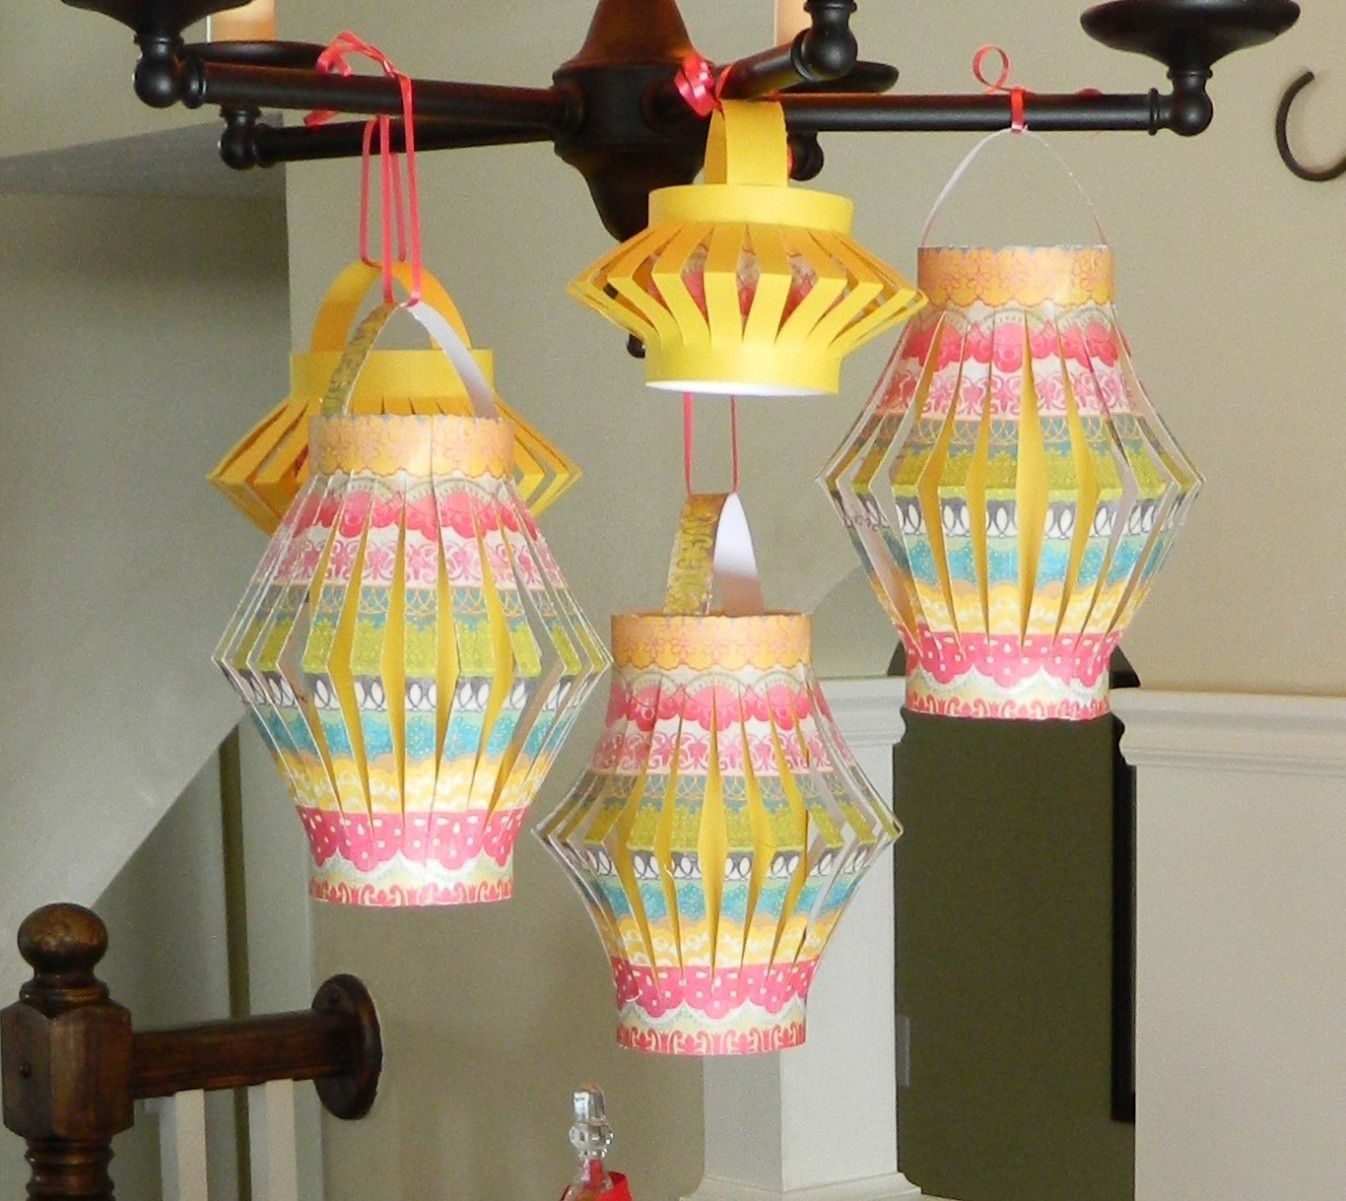 Chinese Paper Lanterns Represent Merriment And Festivity Now You Can Bring Some Culture Into The Classrooms With Homemade